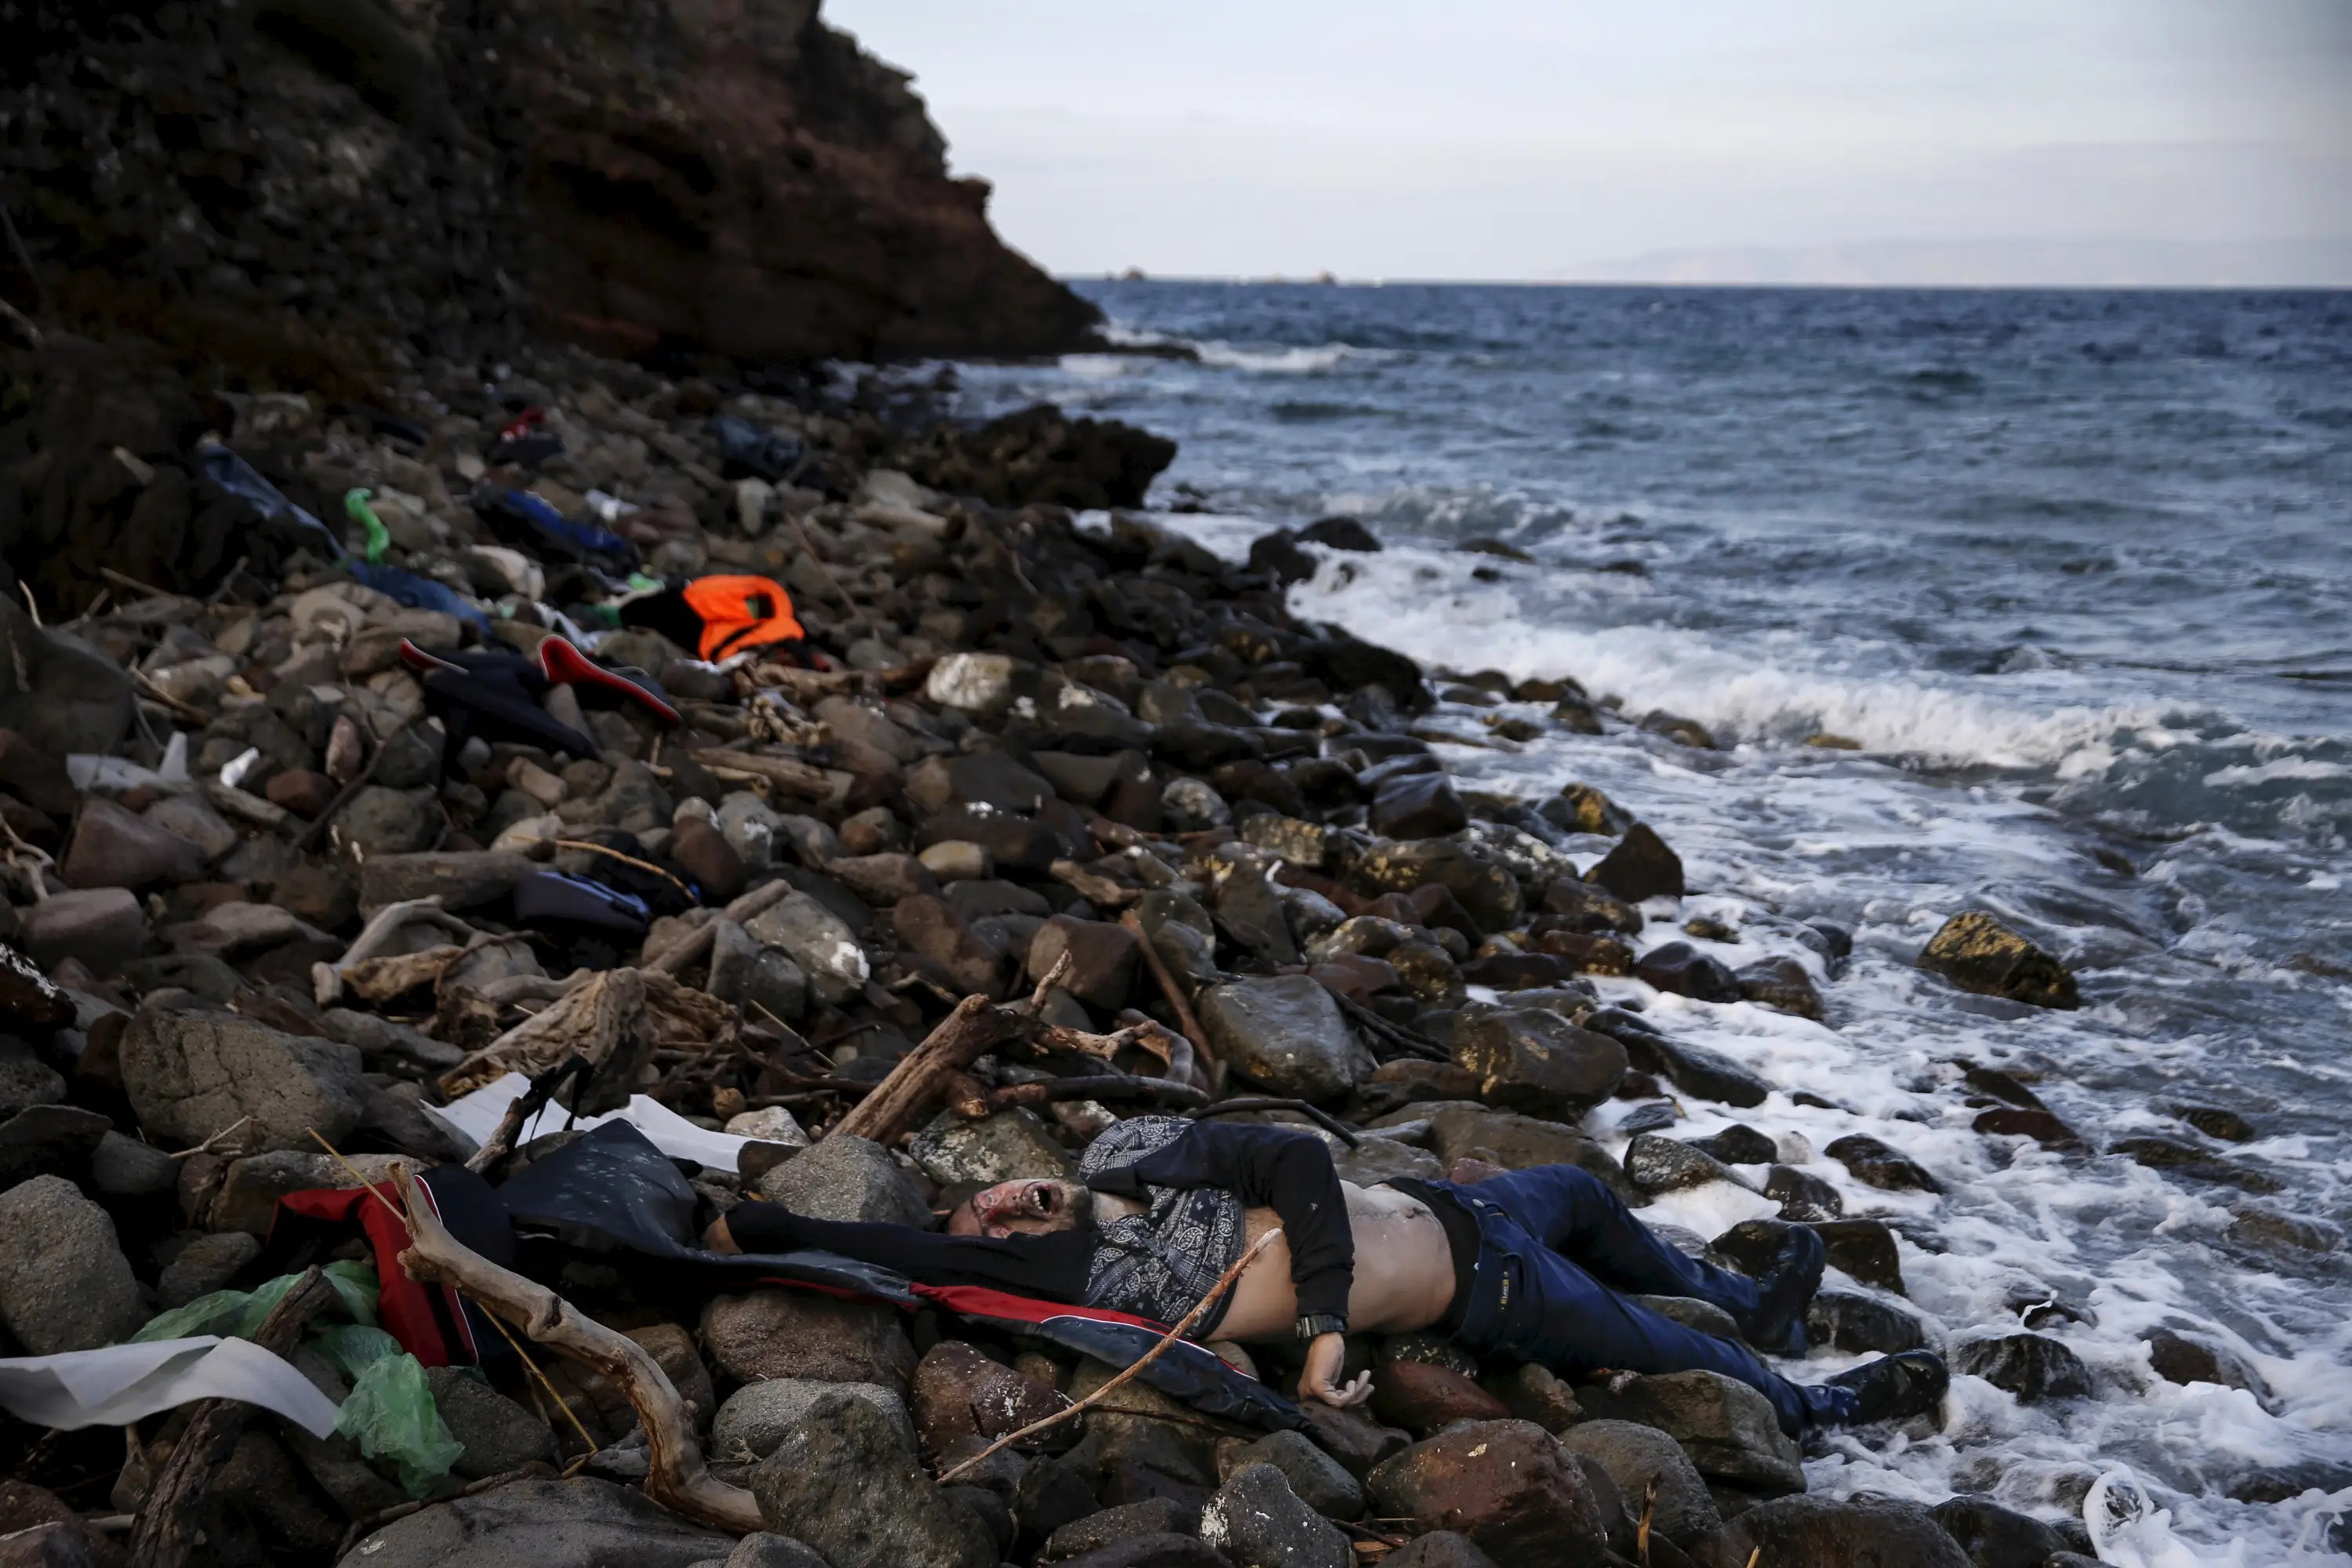 The body of an unidentified migrant is seen on a beach after being washed ashore, on the Greek island of Lesbos, November 7, 2015.